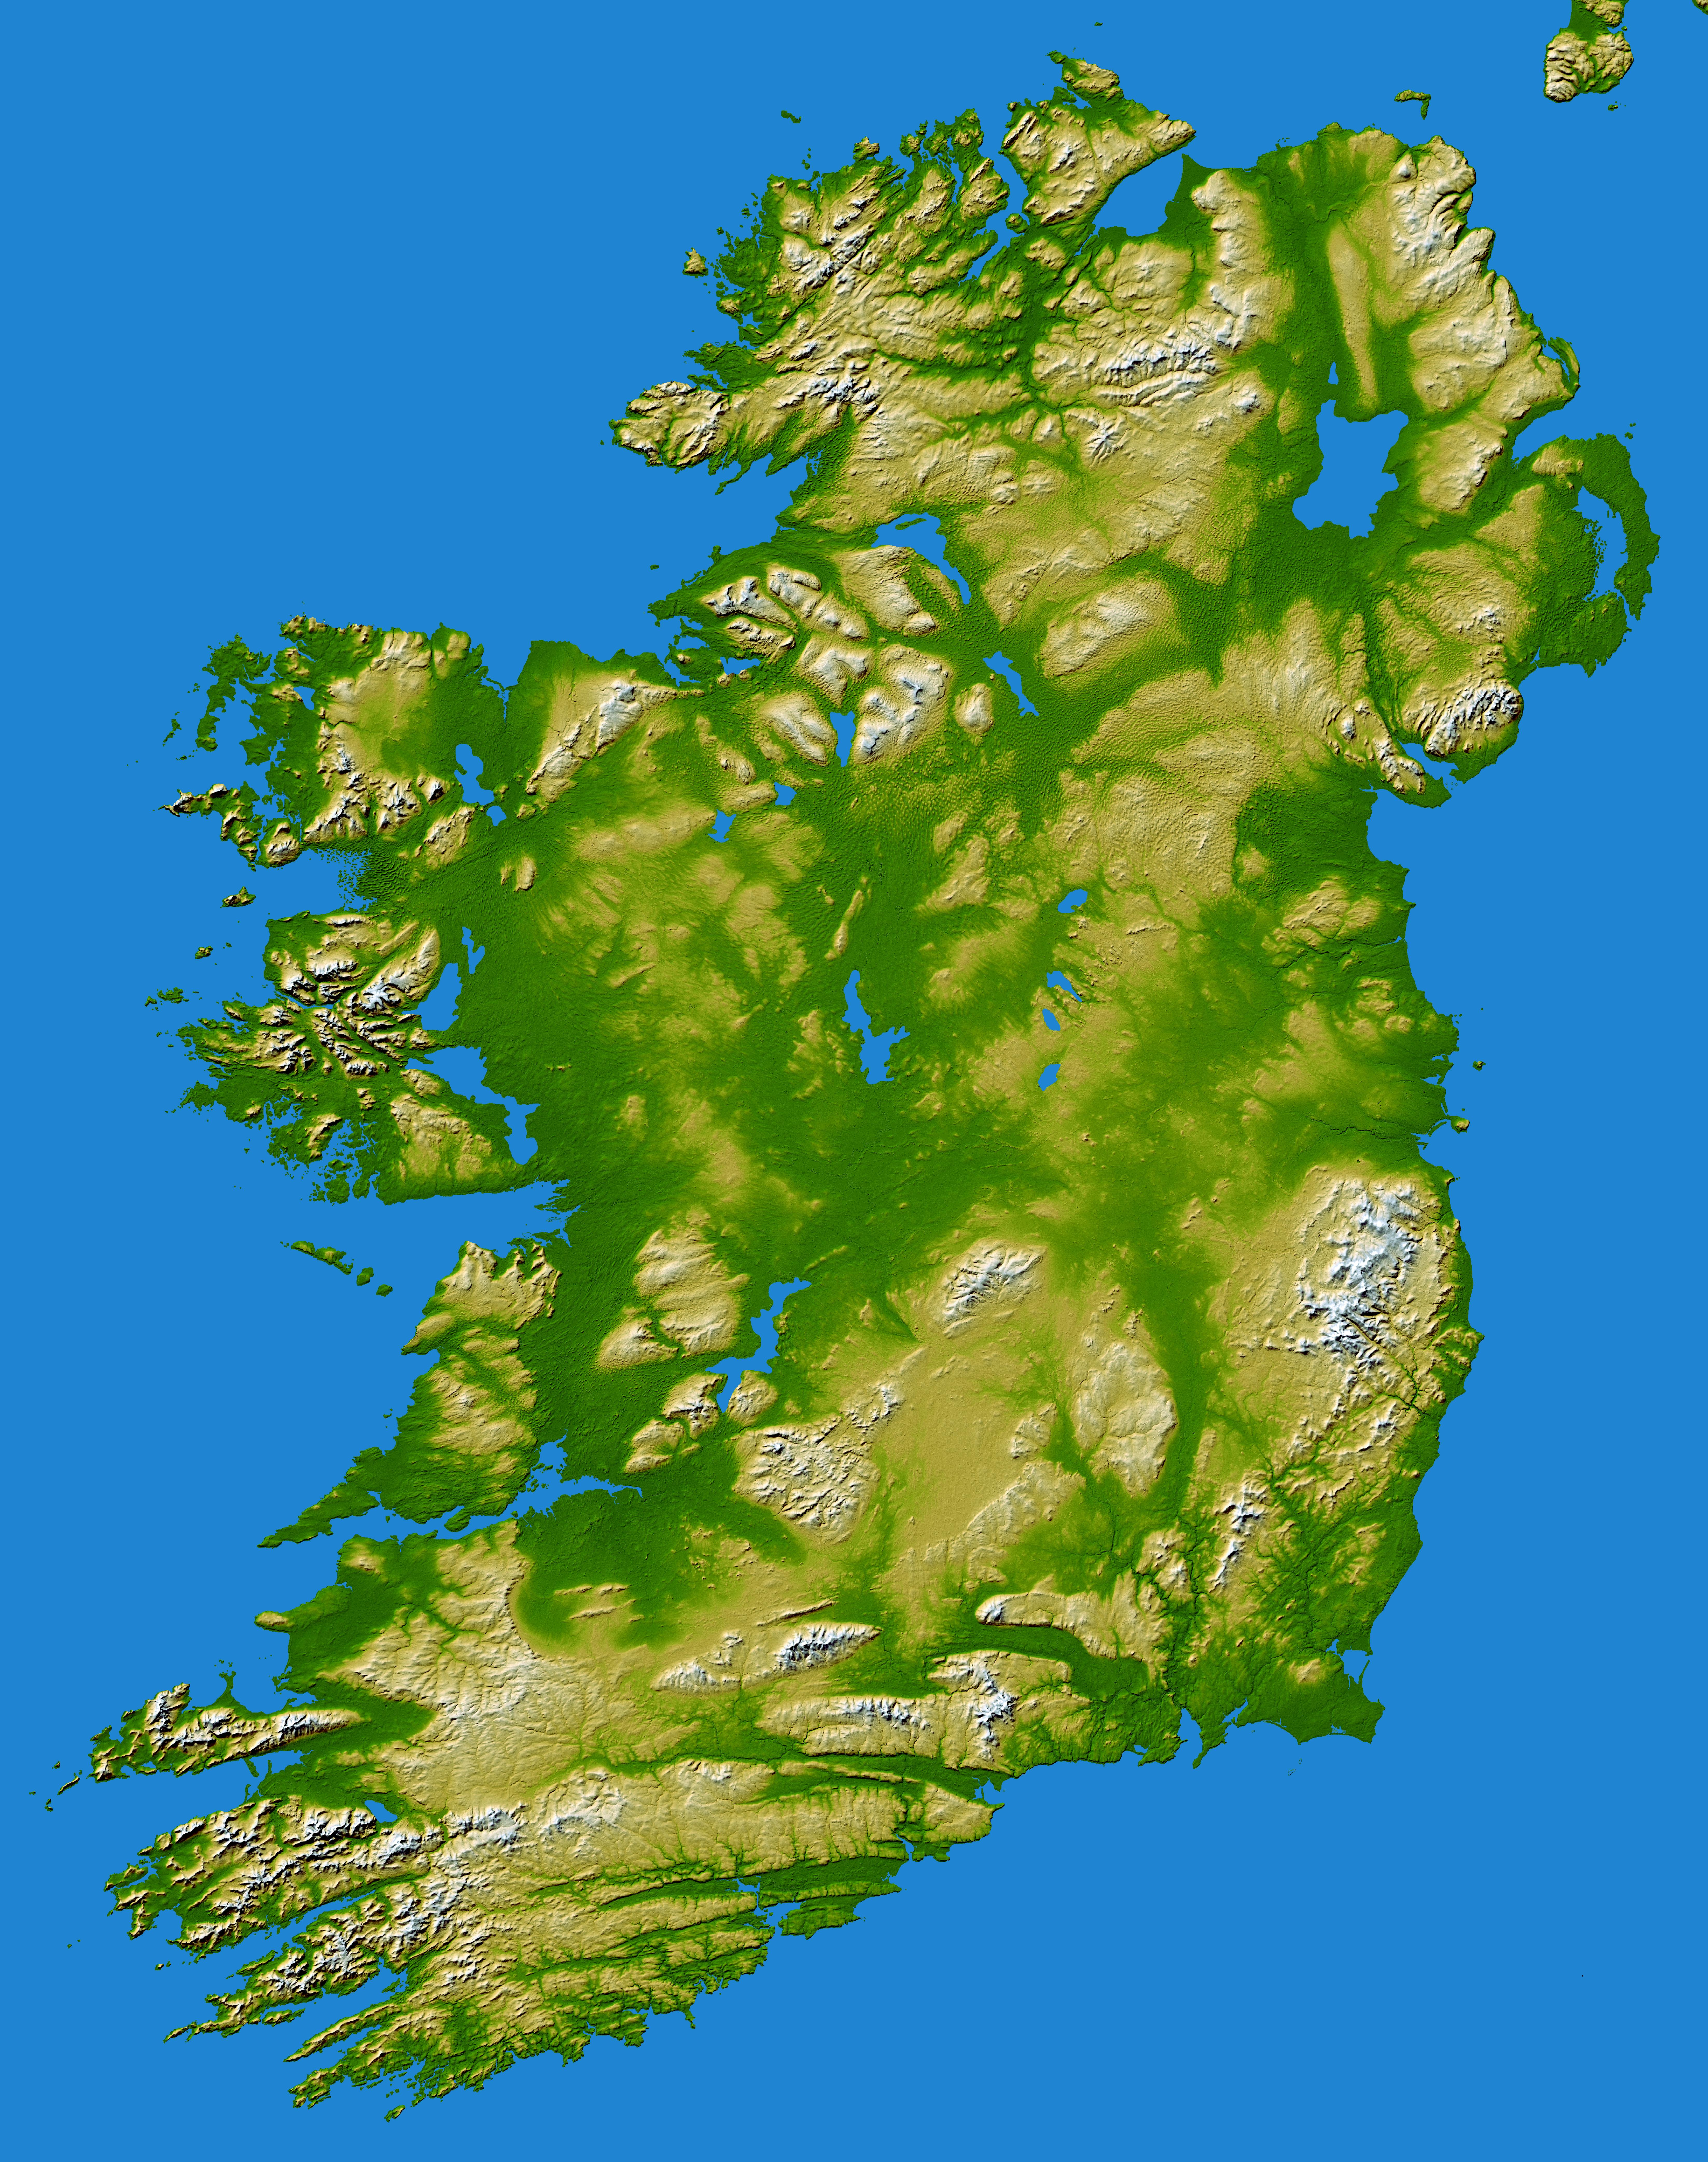 Atlas of Ireland - Wikimedia Commons on restaurants of ireland, satellite maps of homes, 18th century map of ireland, physical map of ireland, satellite maps of usa, geological survey of ireland, map map of ireland, political system of ireland, terrain map of ireland, road map of ireland, europe map of ireland, topographic map of ireland, weather of ireland, street map of ireland, overhead view of ireland, world map of ireland, statistics of ireland, gps of ireland, interactive map of ireland, geographical map of ireland,